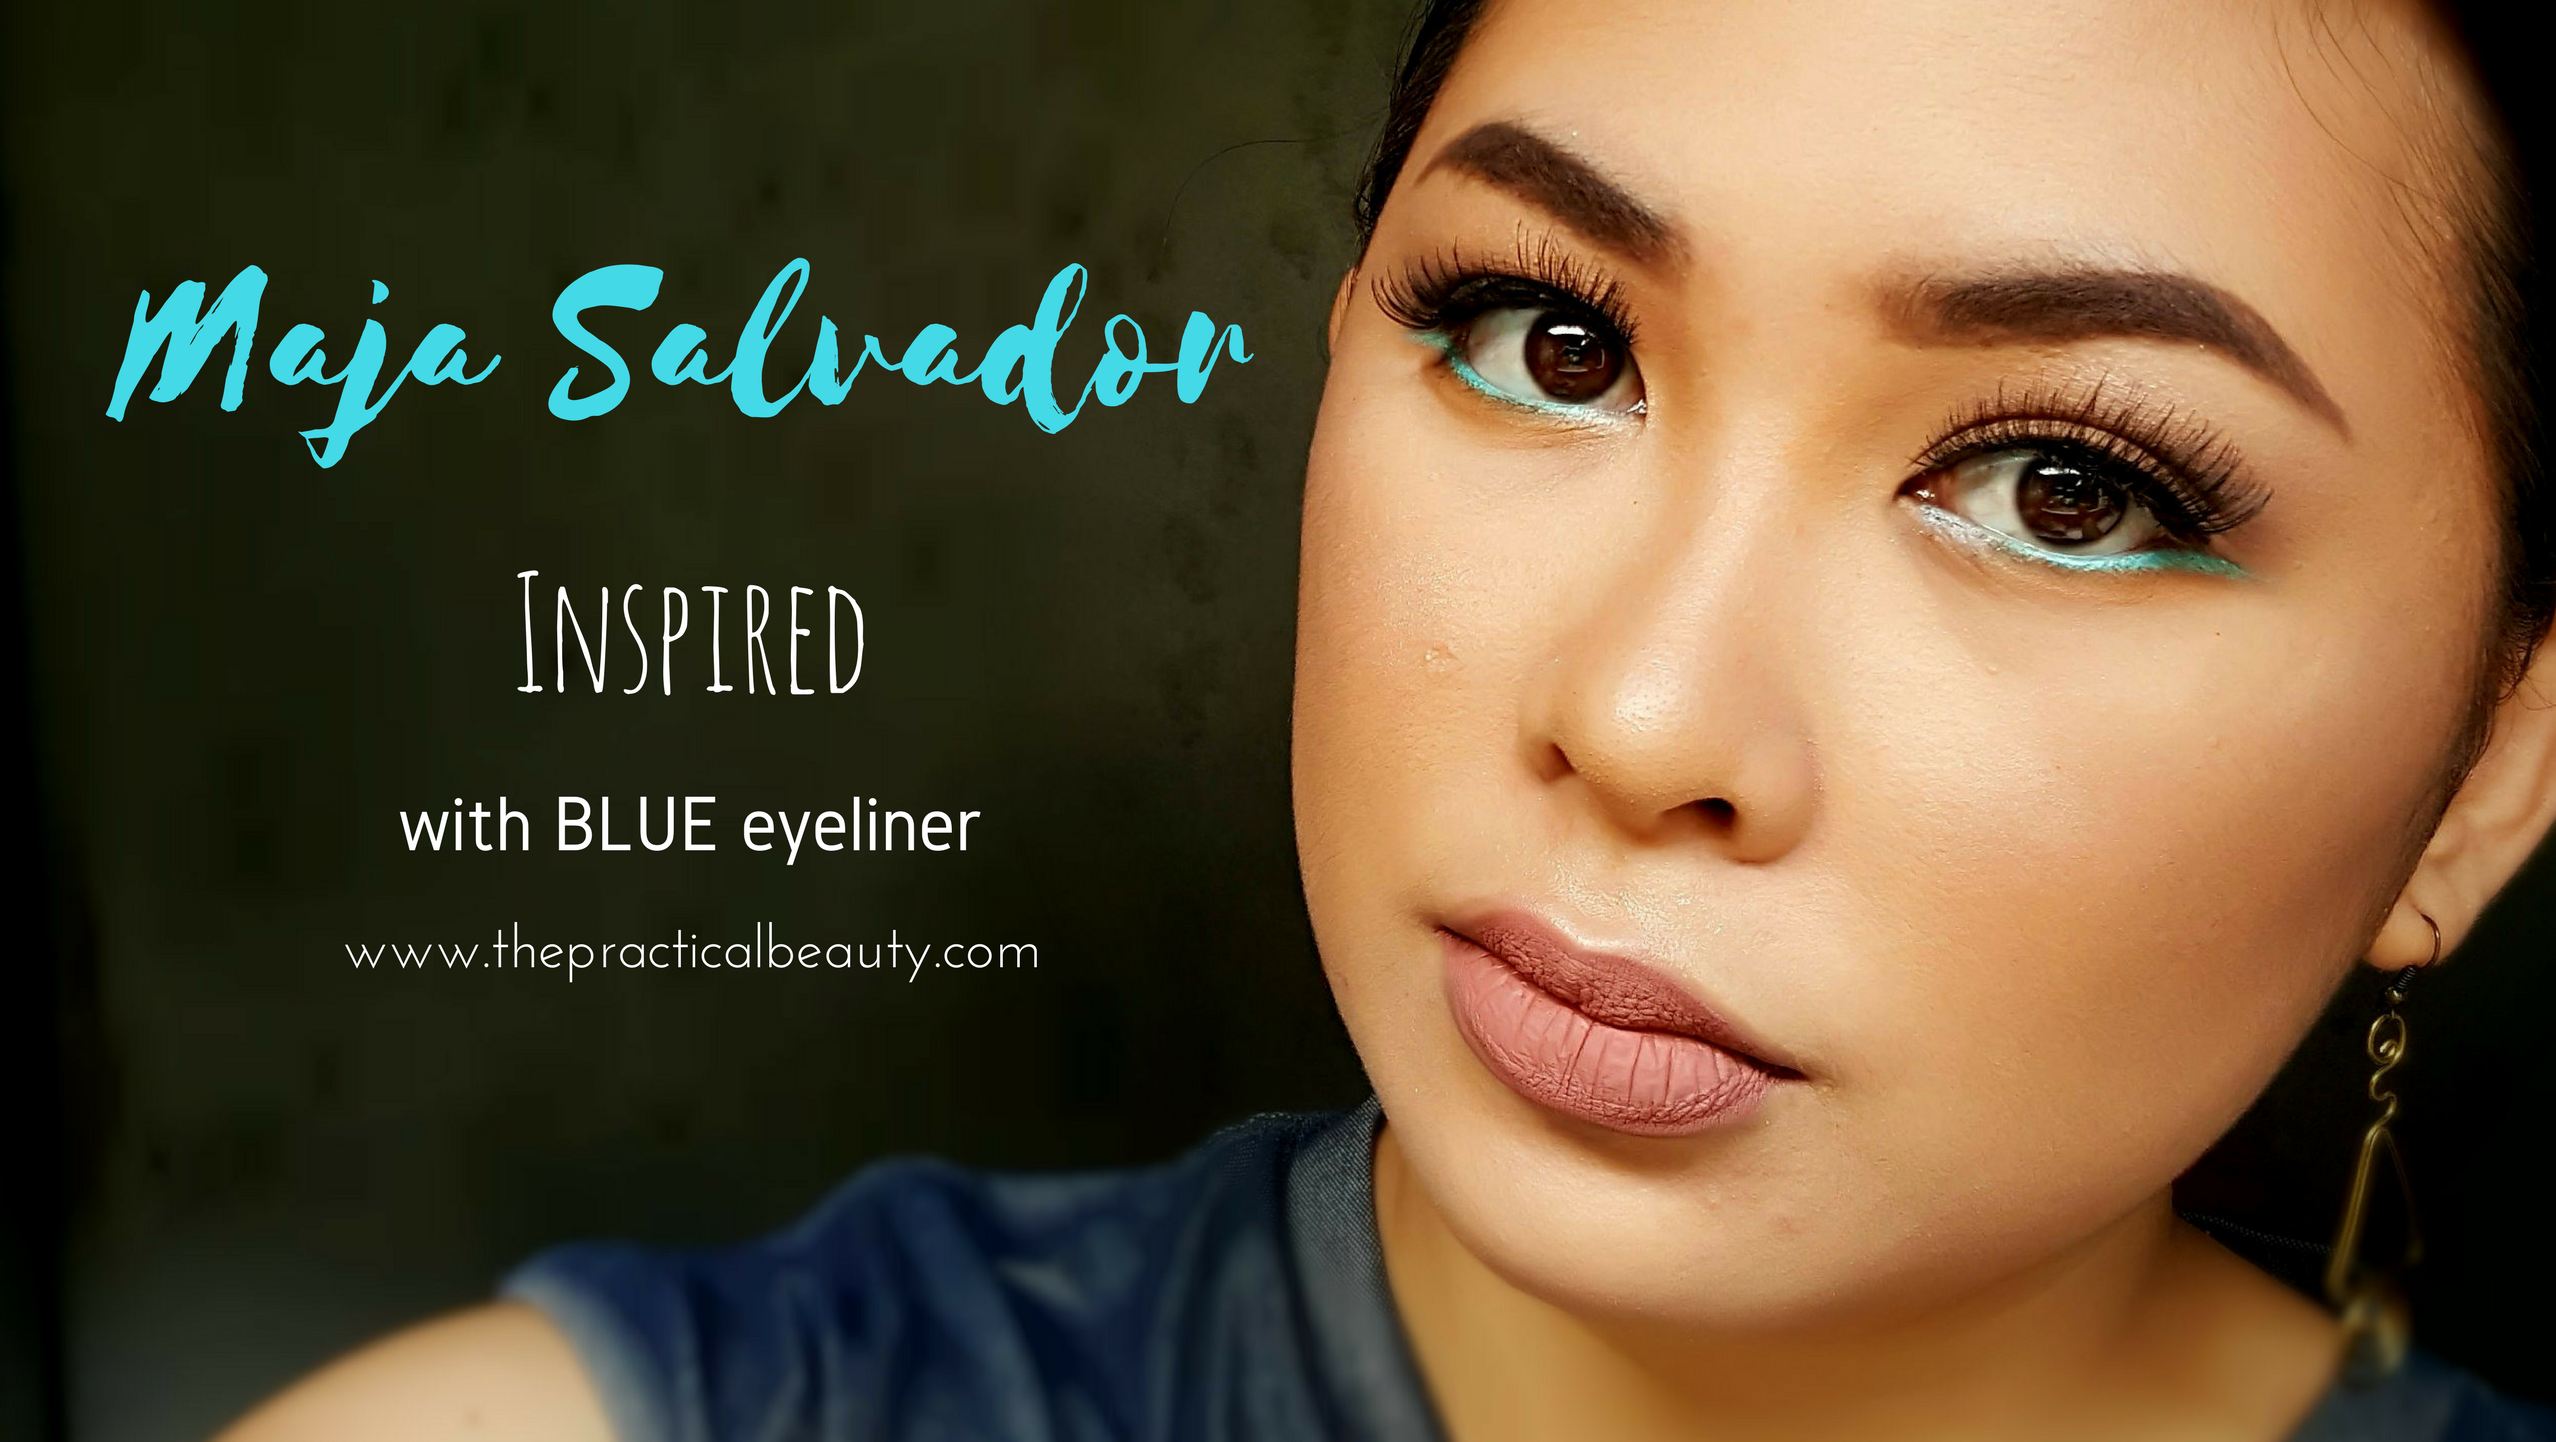 Maja Salvador Inspired Look - With Blue Eye Makeup | The Practical Beauty